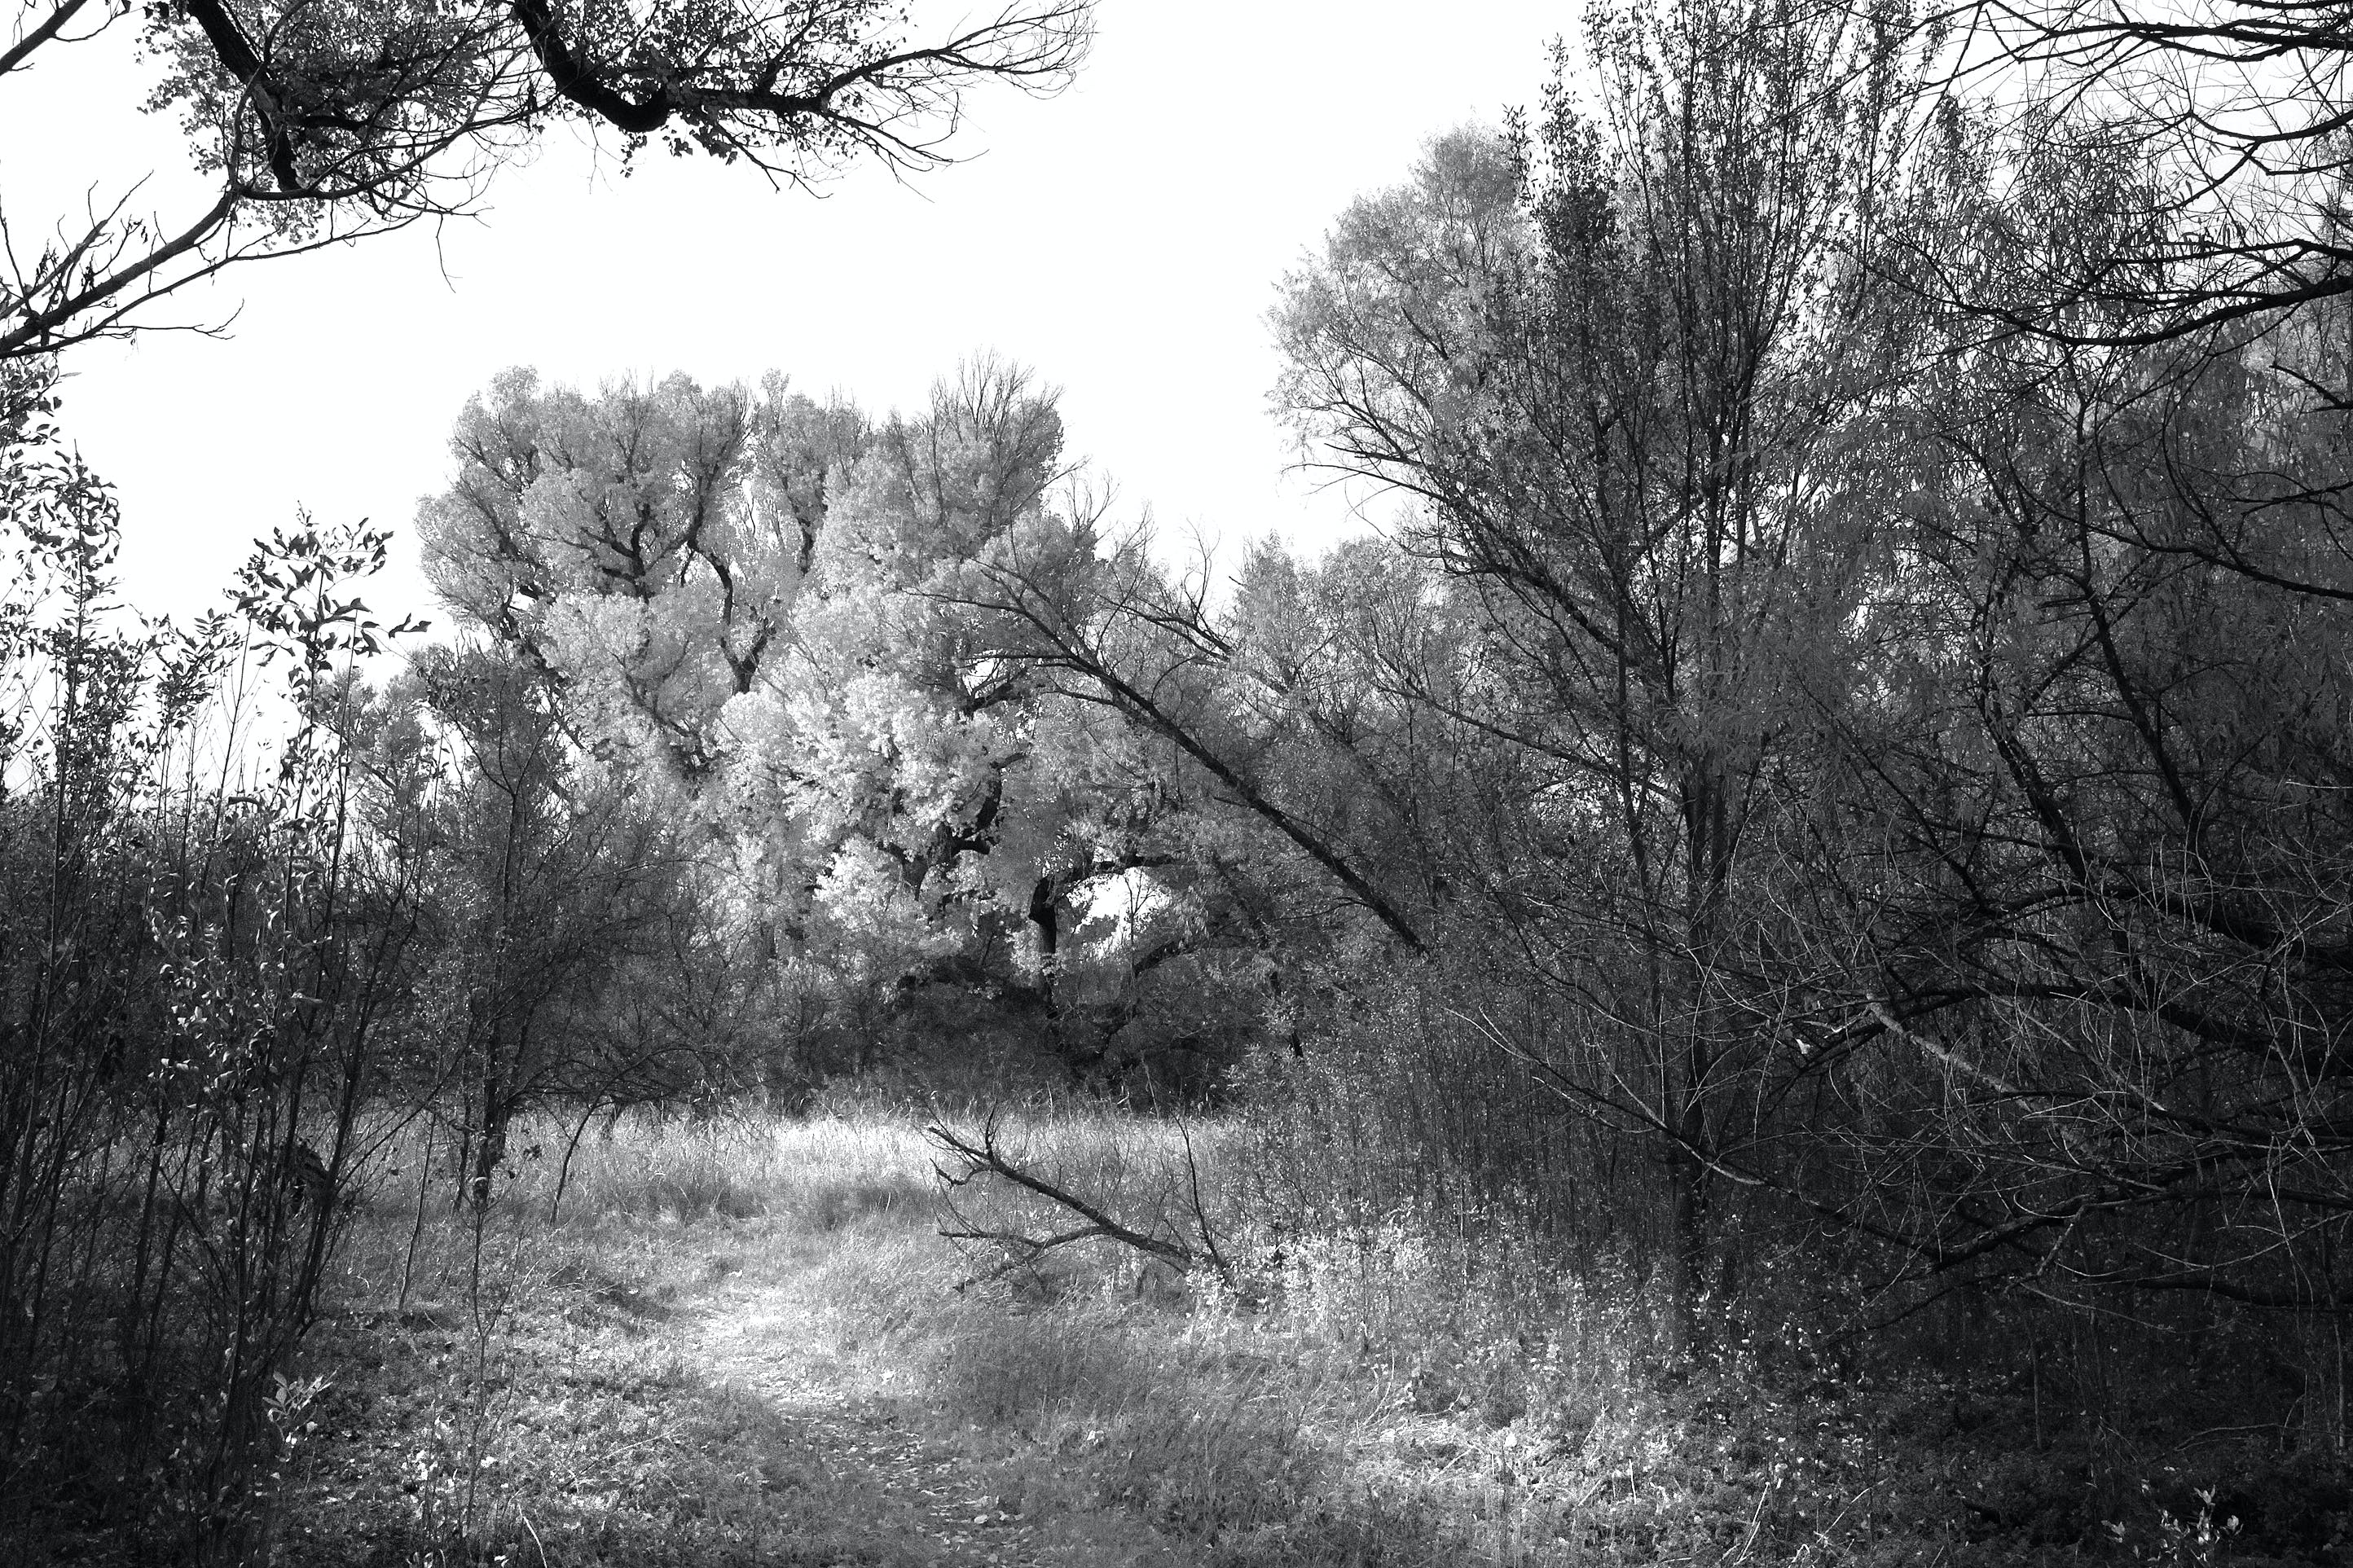 Grayscale Photo of Trees in the Woods